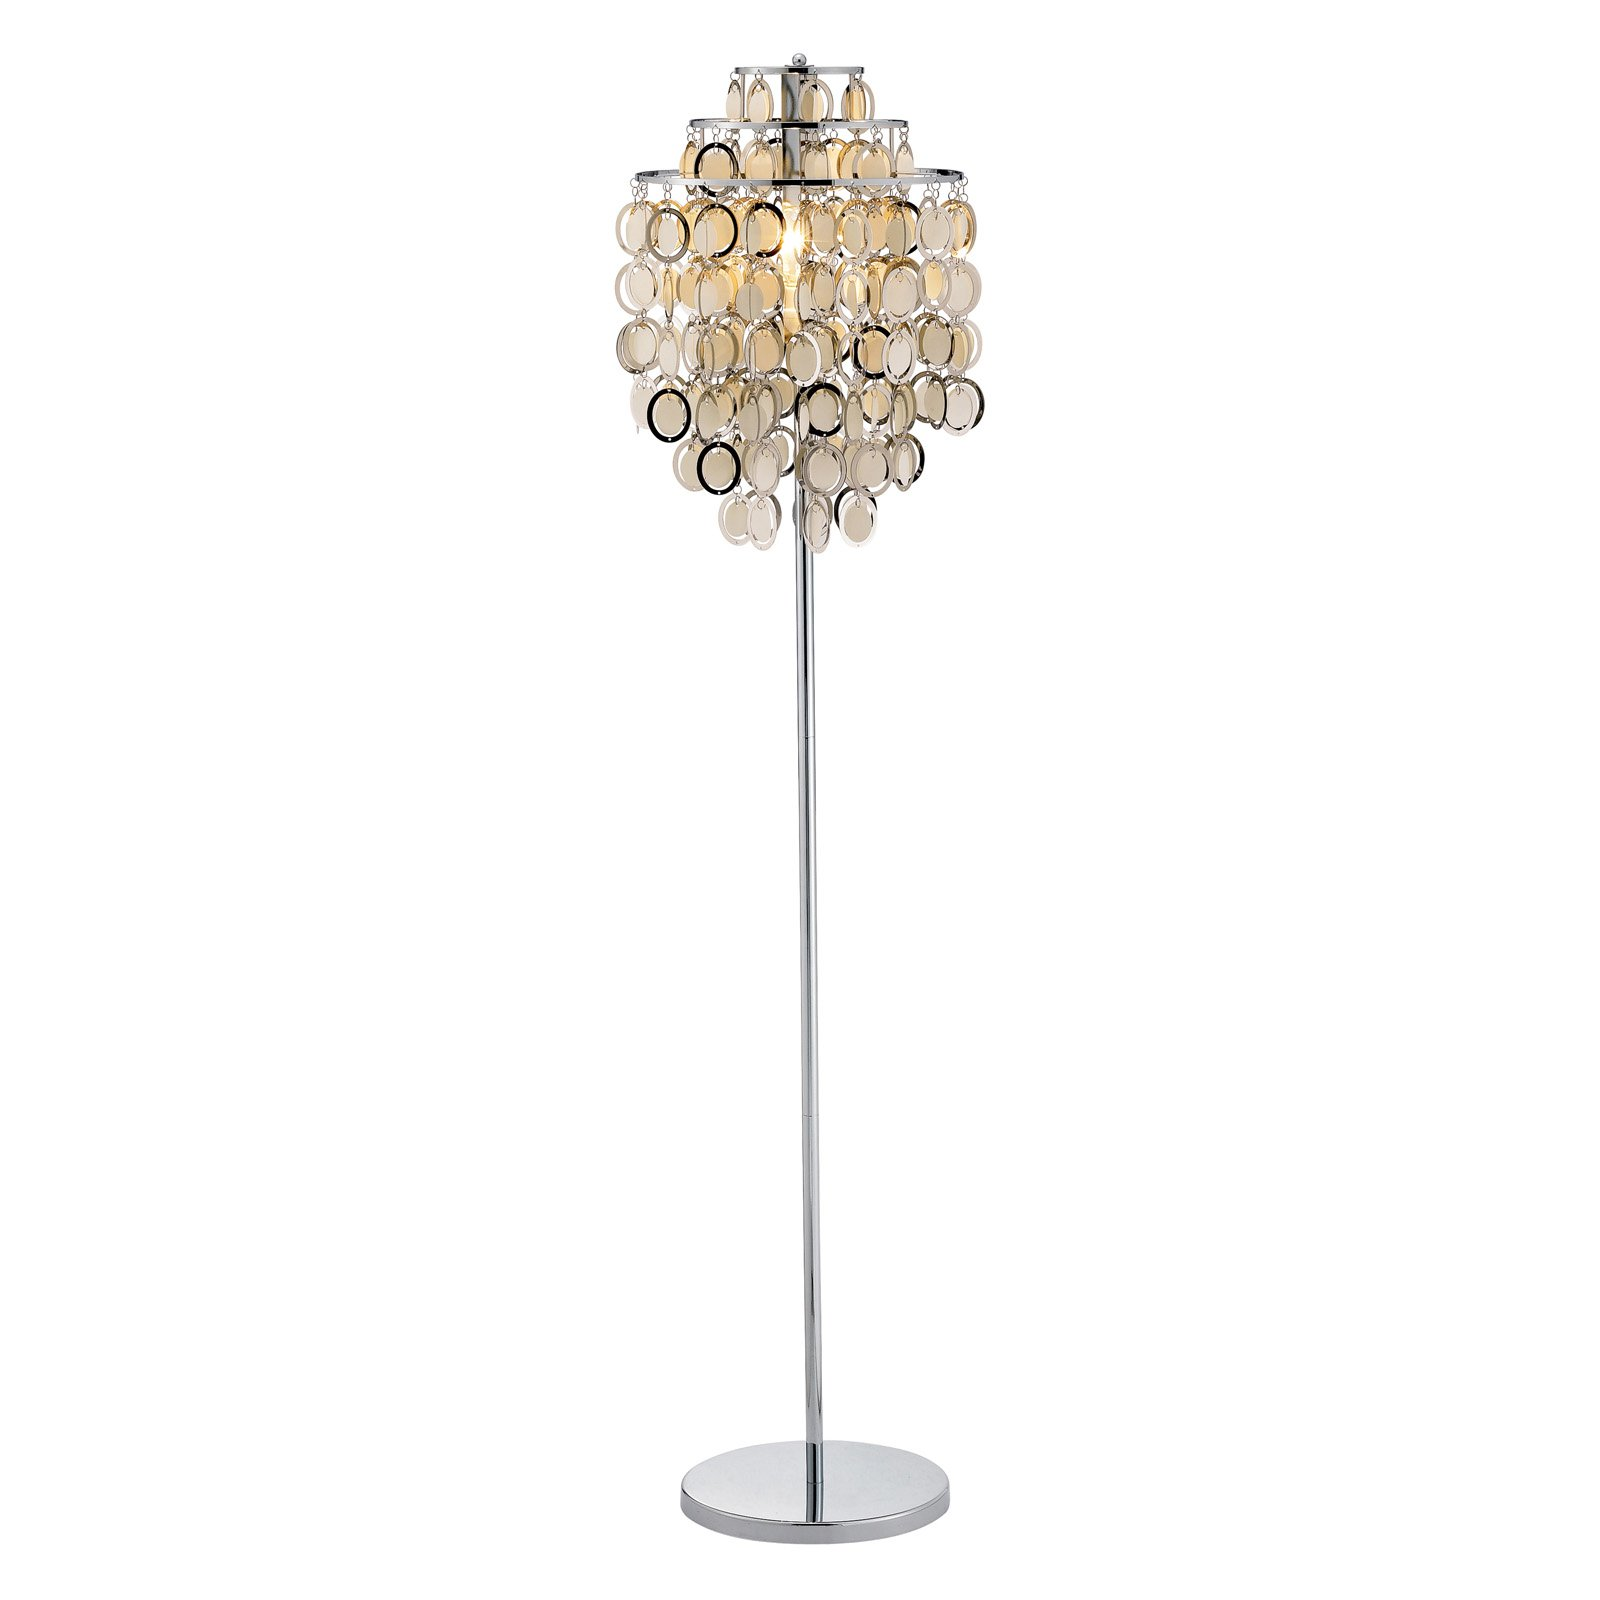 Adesso 3637-22 Shimmy Chrome Floor Touch Lamp by Generic